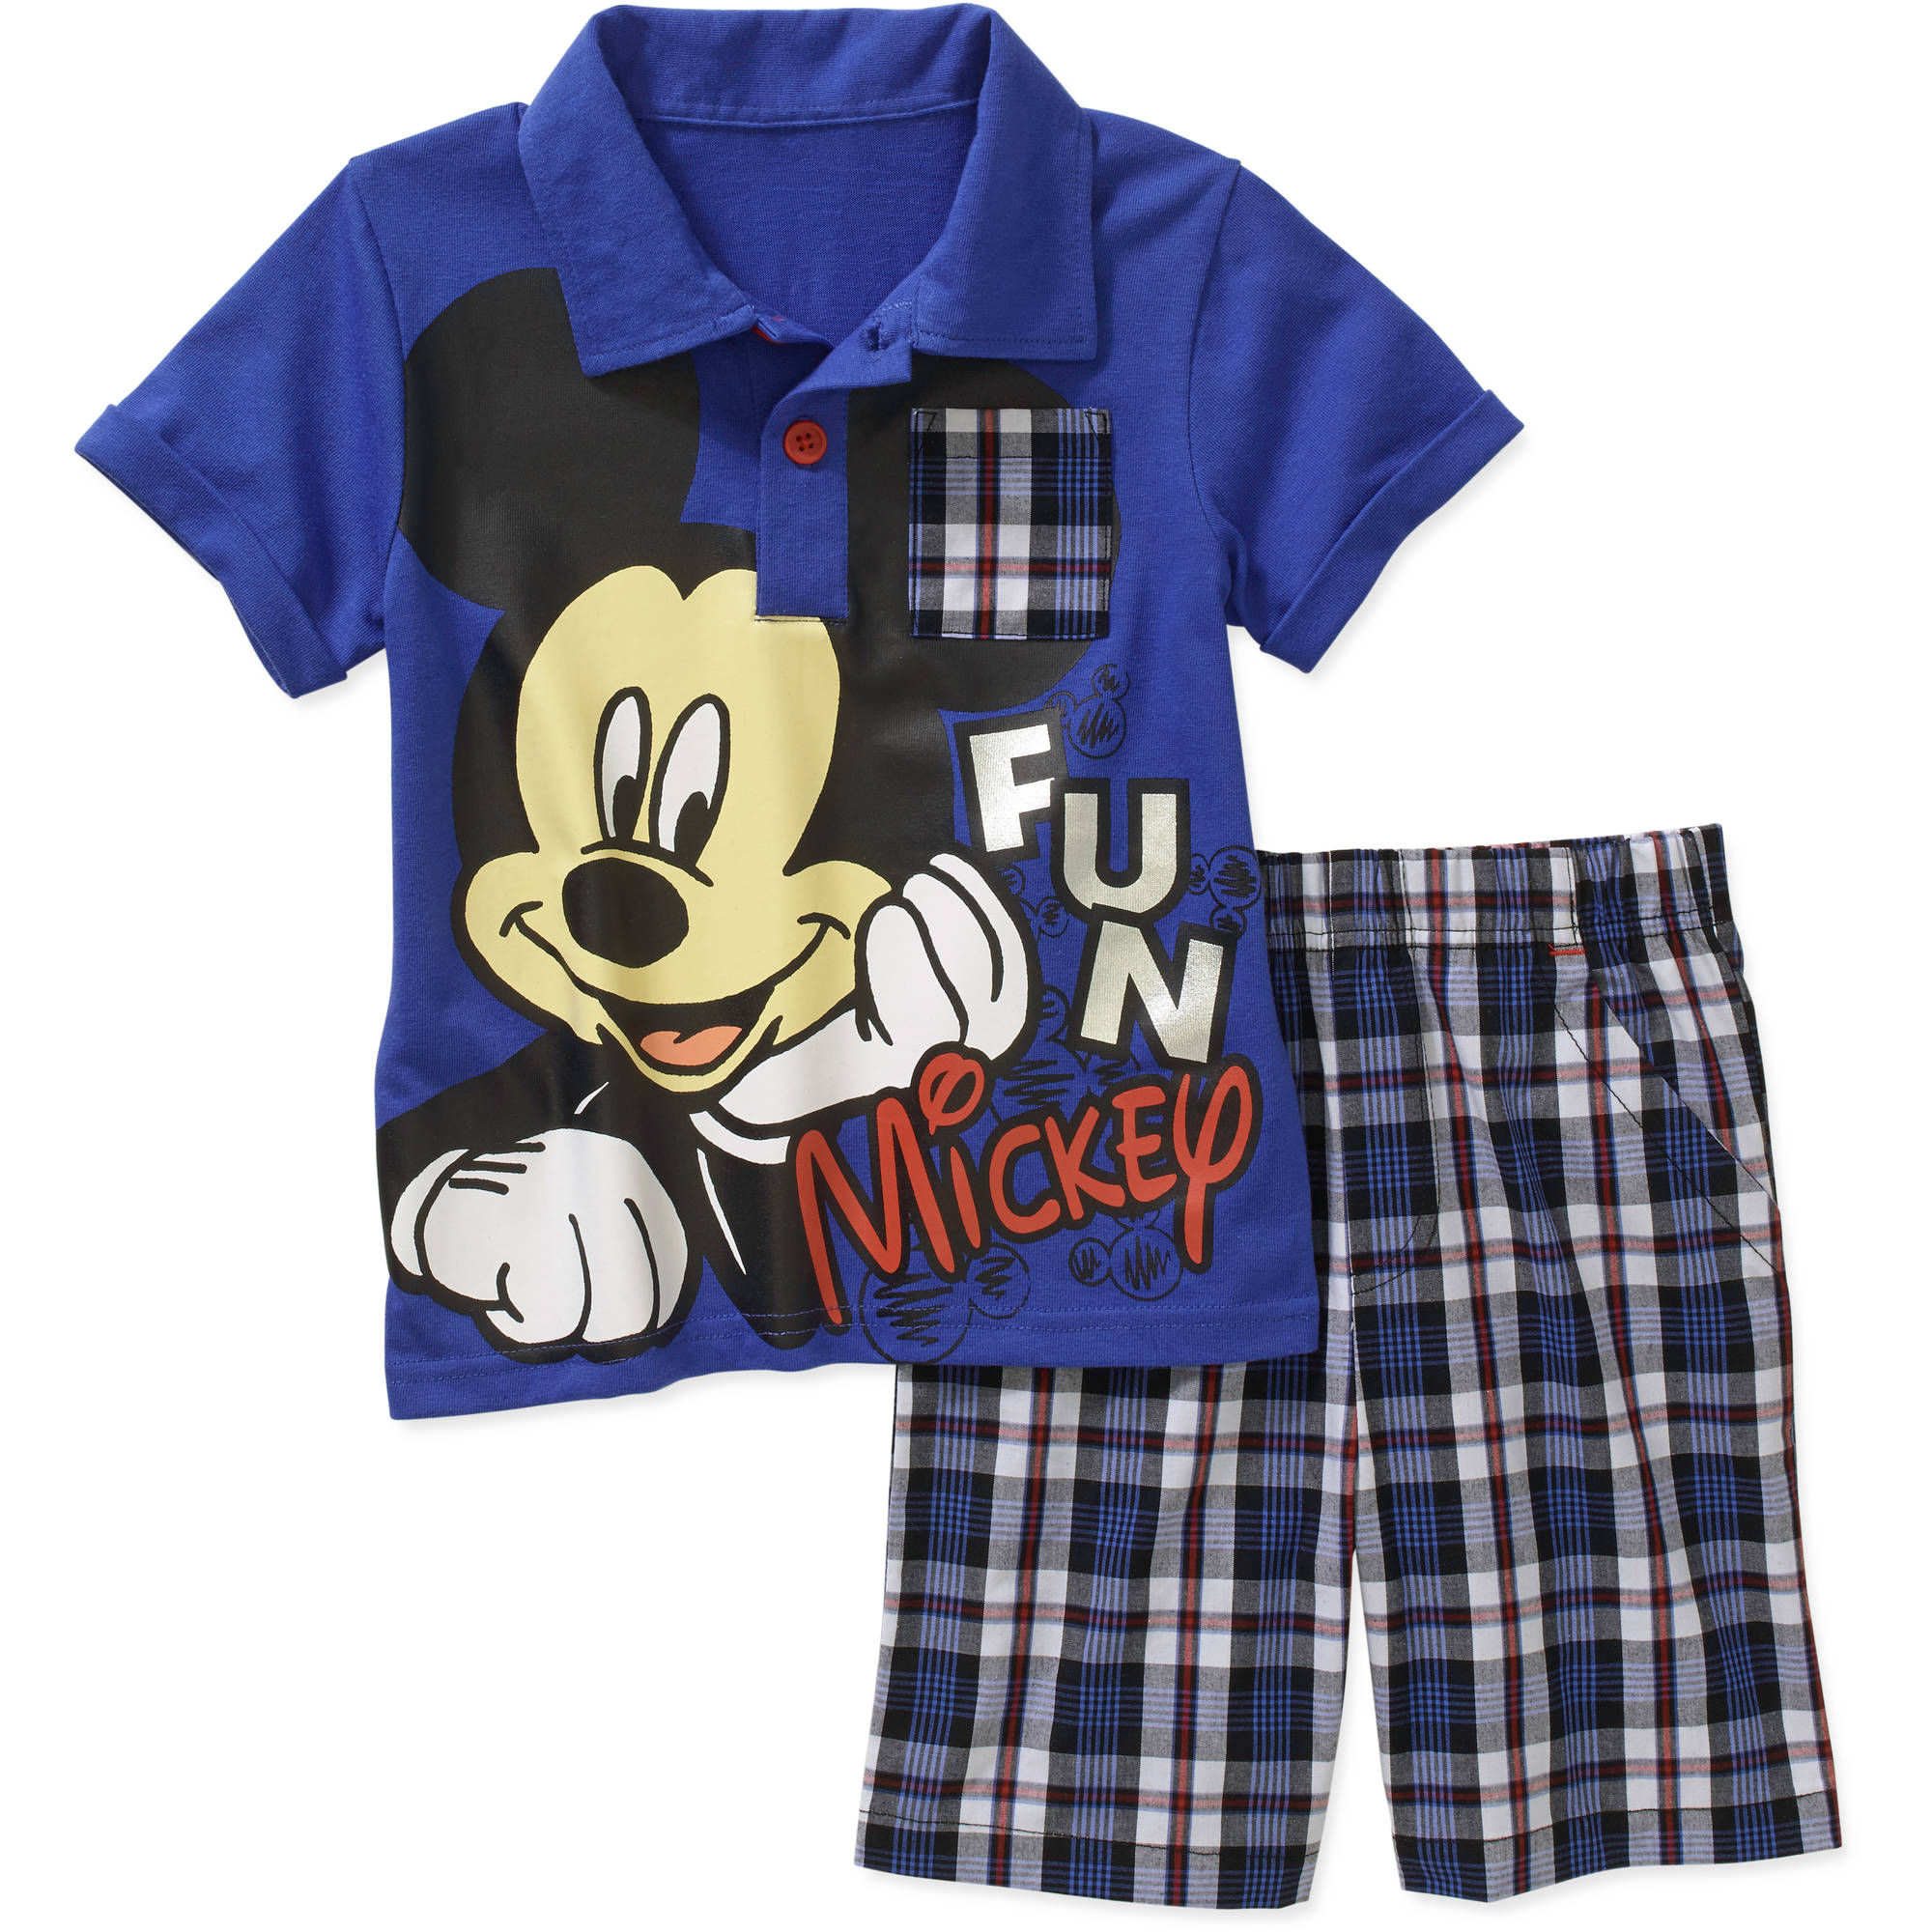 Mickey Mouse Toddler Boy Graphic Polo Tee Shirt and Shorts Outfit Set